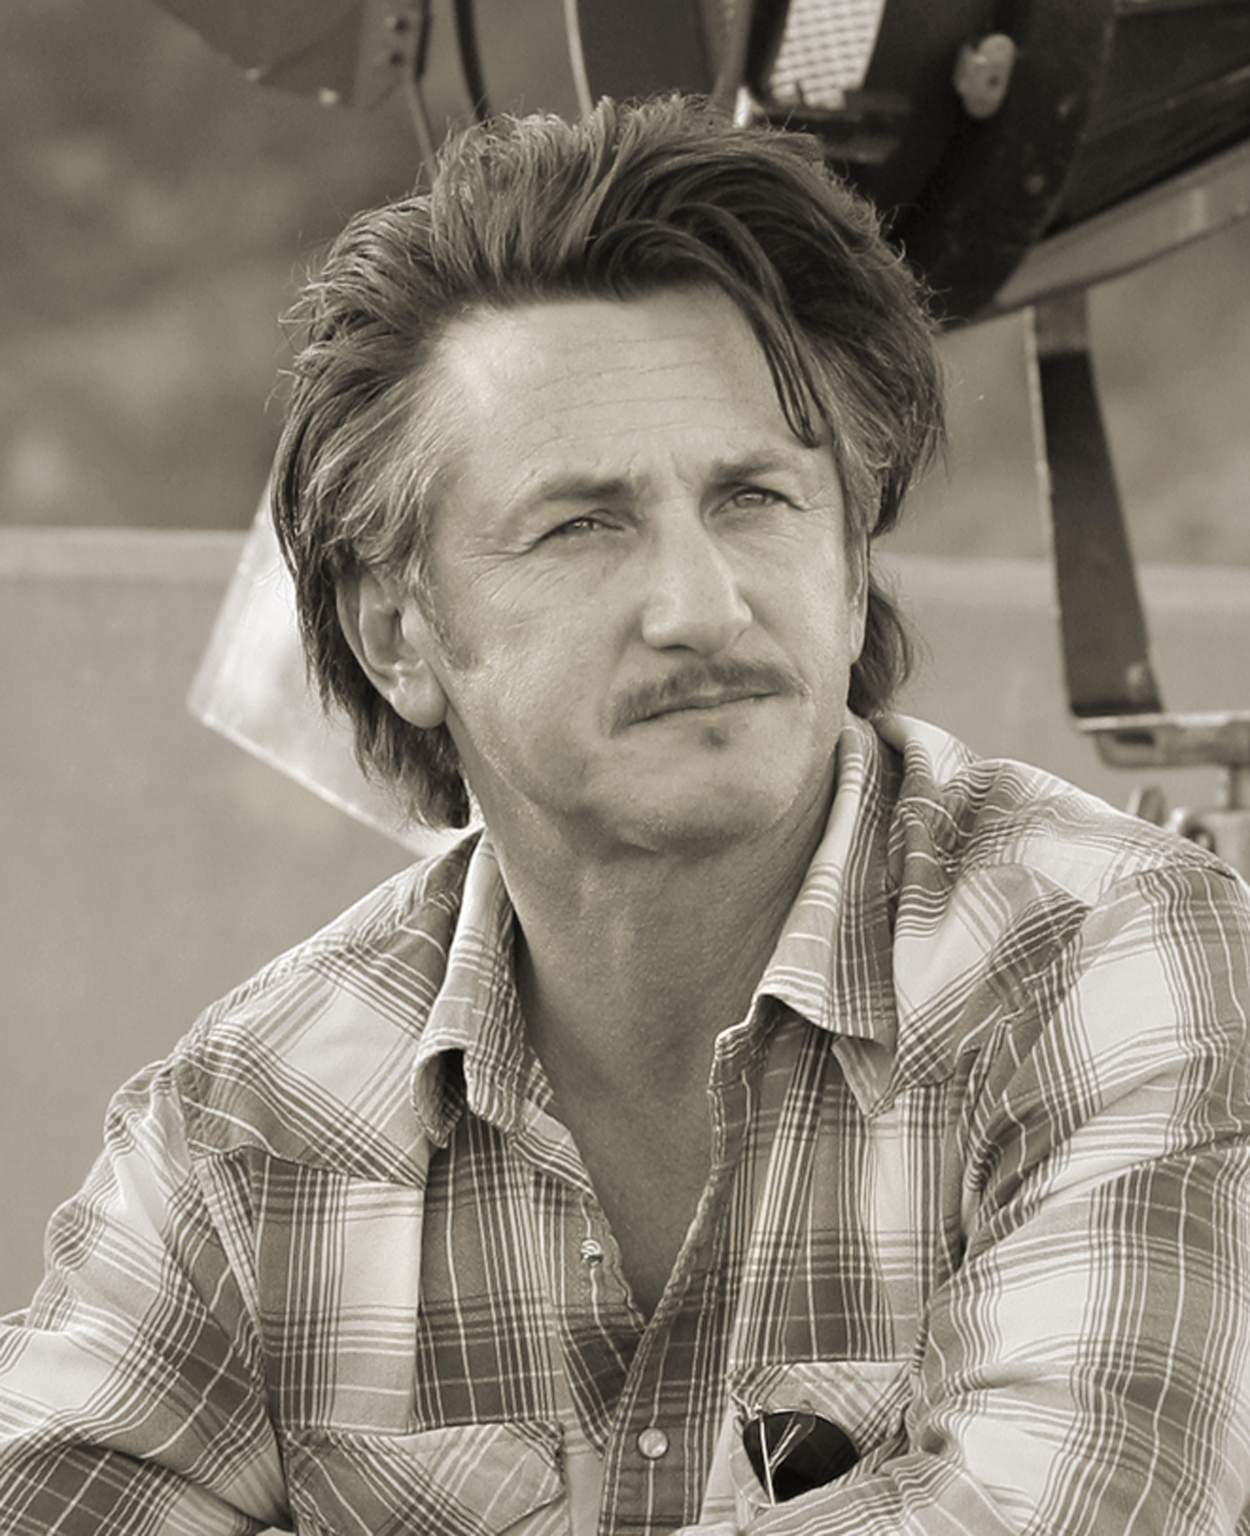 Sean Penn - Photos